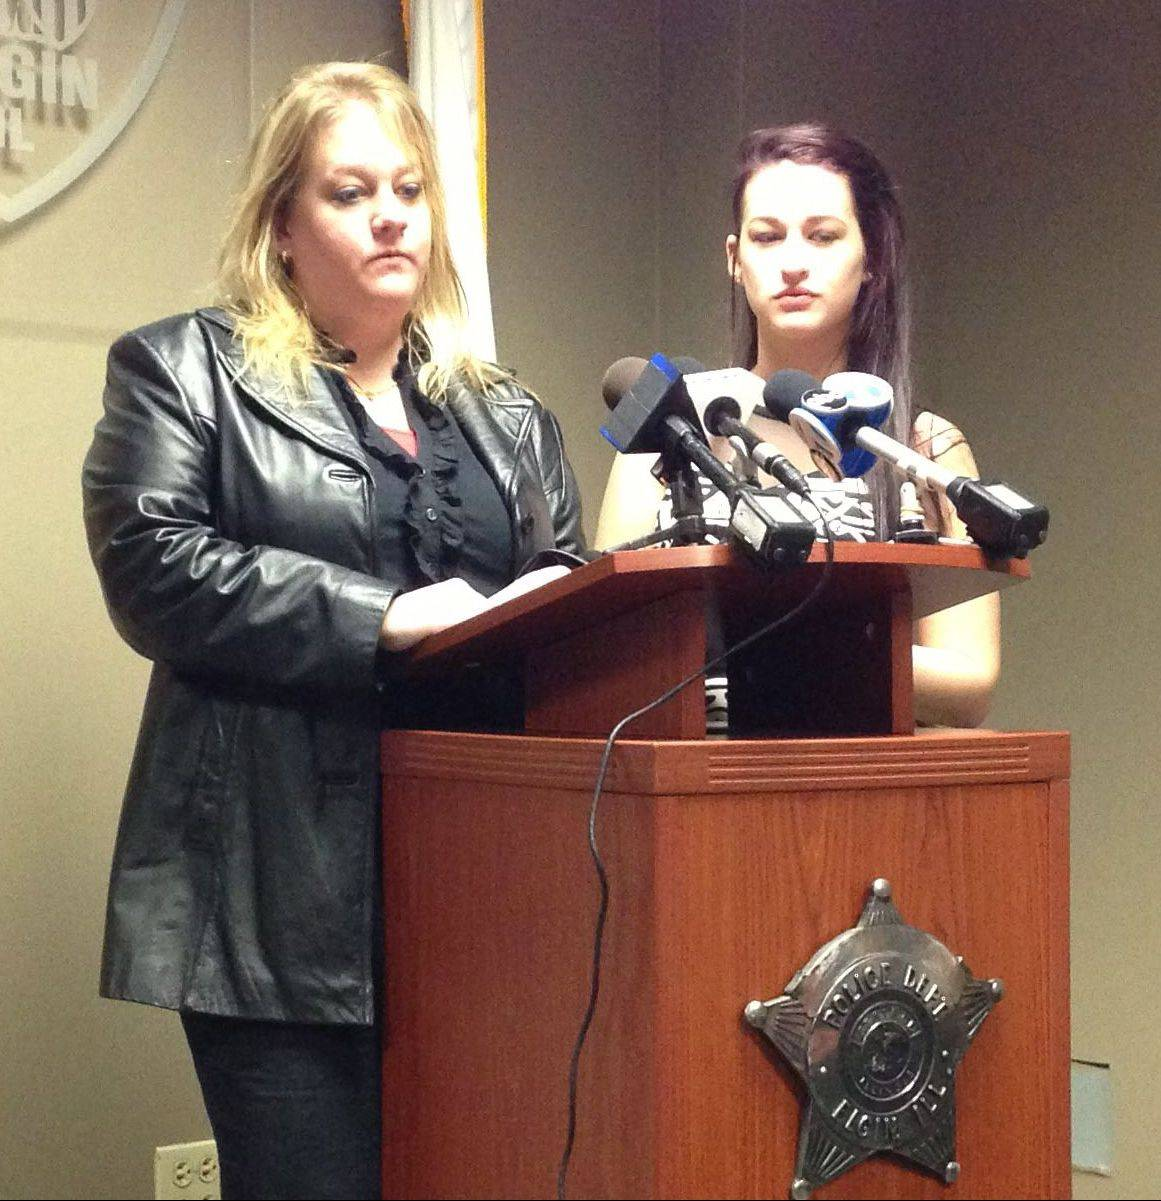 Lonna Zwerenz, left, and her daughter, Alexis, talk about their relative, John Poyer, Thursday at the Elgin Police Department. Poyer was murdered Nov. 22, and Elgin police announced charges against one of his neighbors, Matthew L. Stoecklein.